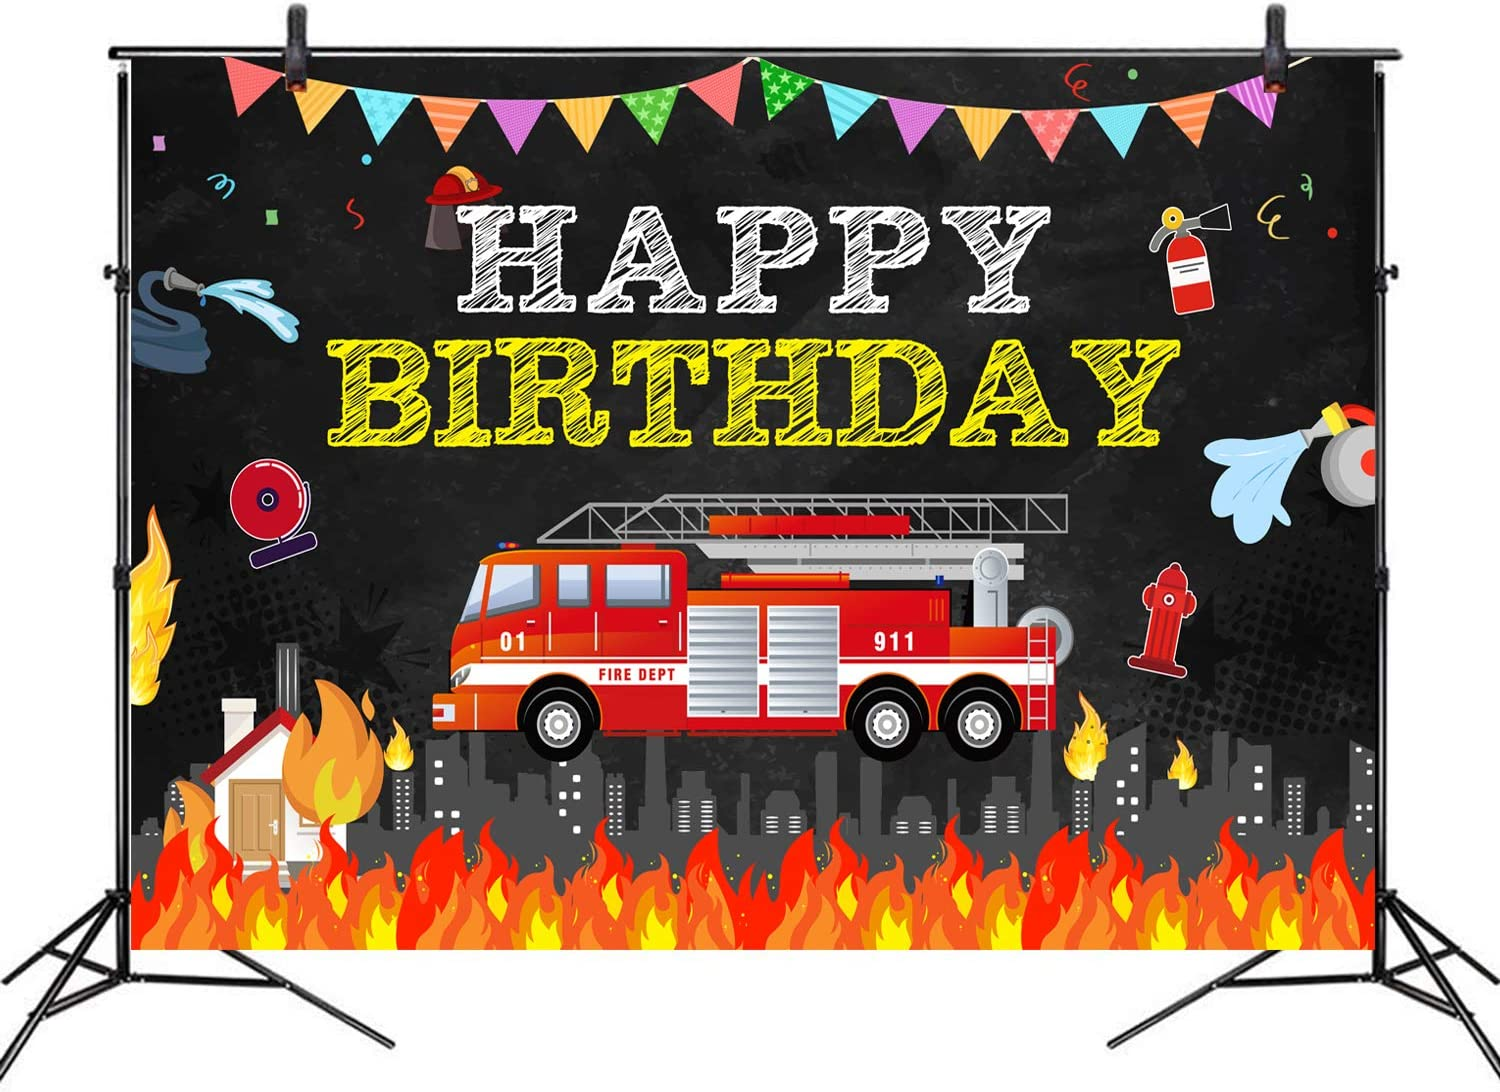 7 x 5 ft Fire Truck Theme Happy Birthday Photography Backdrop for Baby Boy Happy First Birthday - Baby Shower - Fireman Birthday Backdrop Video Shoot Studio Prop Wallpaper Indoor Outdoor Party Decorat